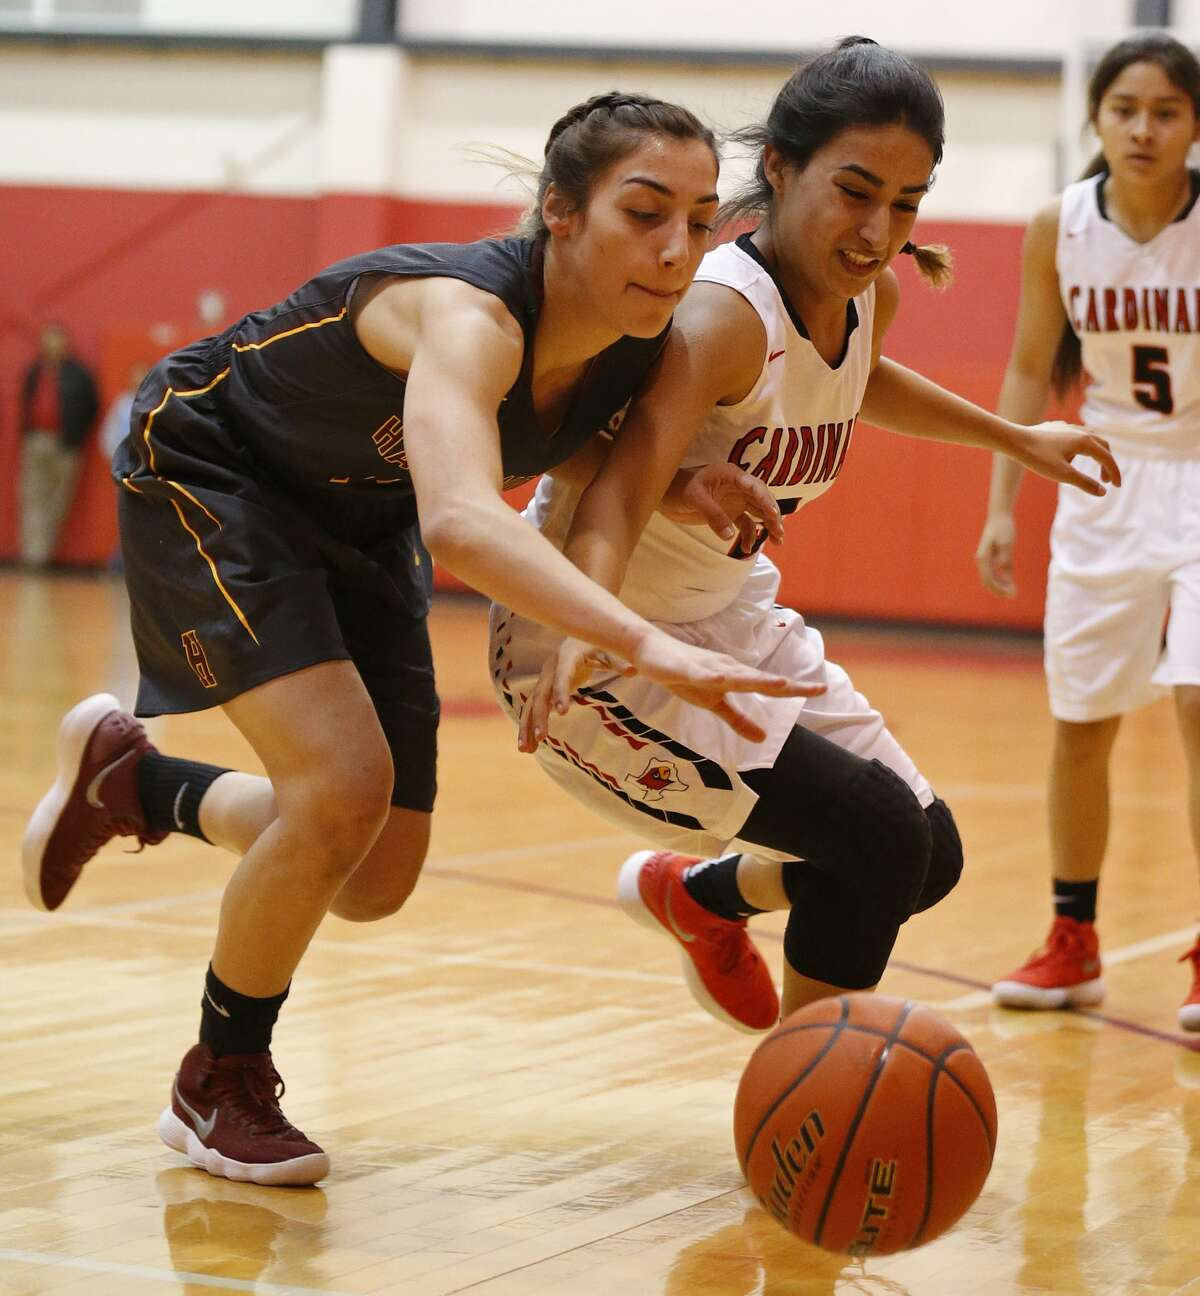 Harlandale's Fawzieh Saleh (left) and Southside's Alexis Tijerina chase after a loose ball during first half action held Friday Jan. 5, 2018 at Southside High School.